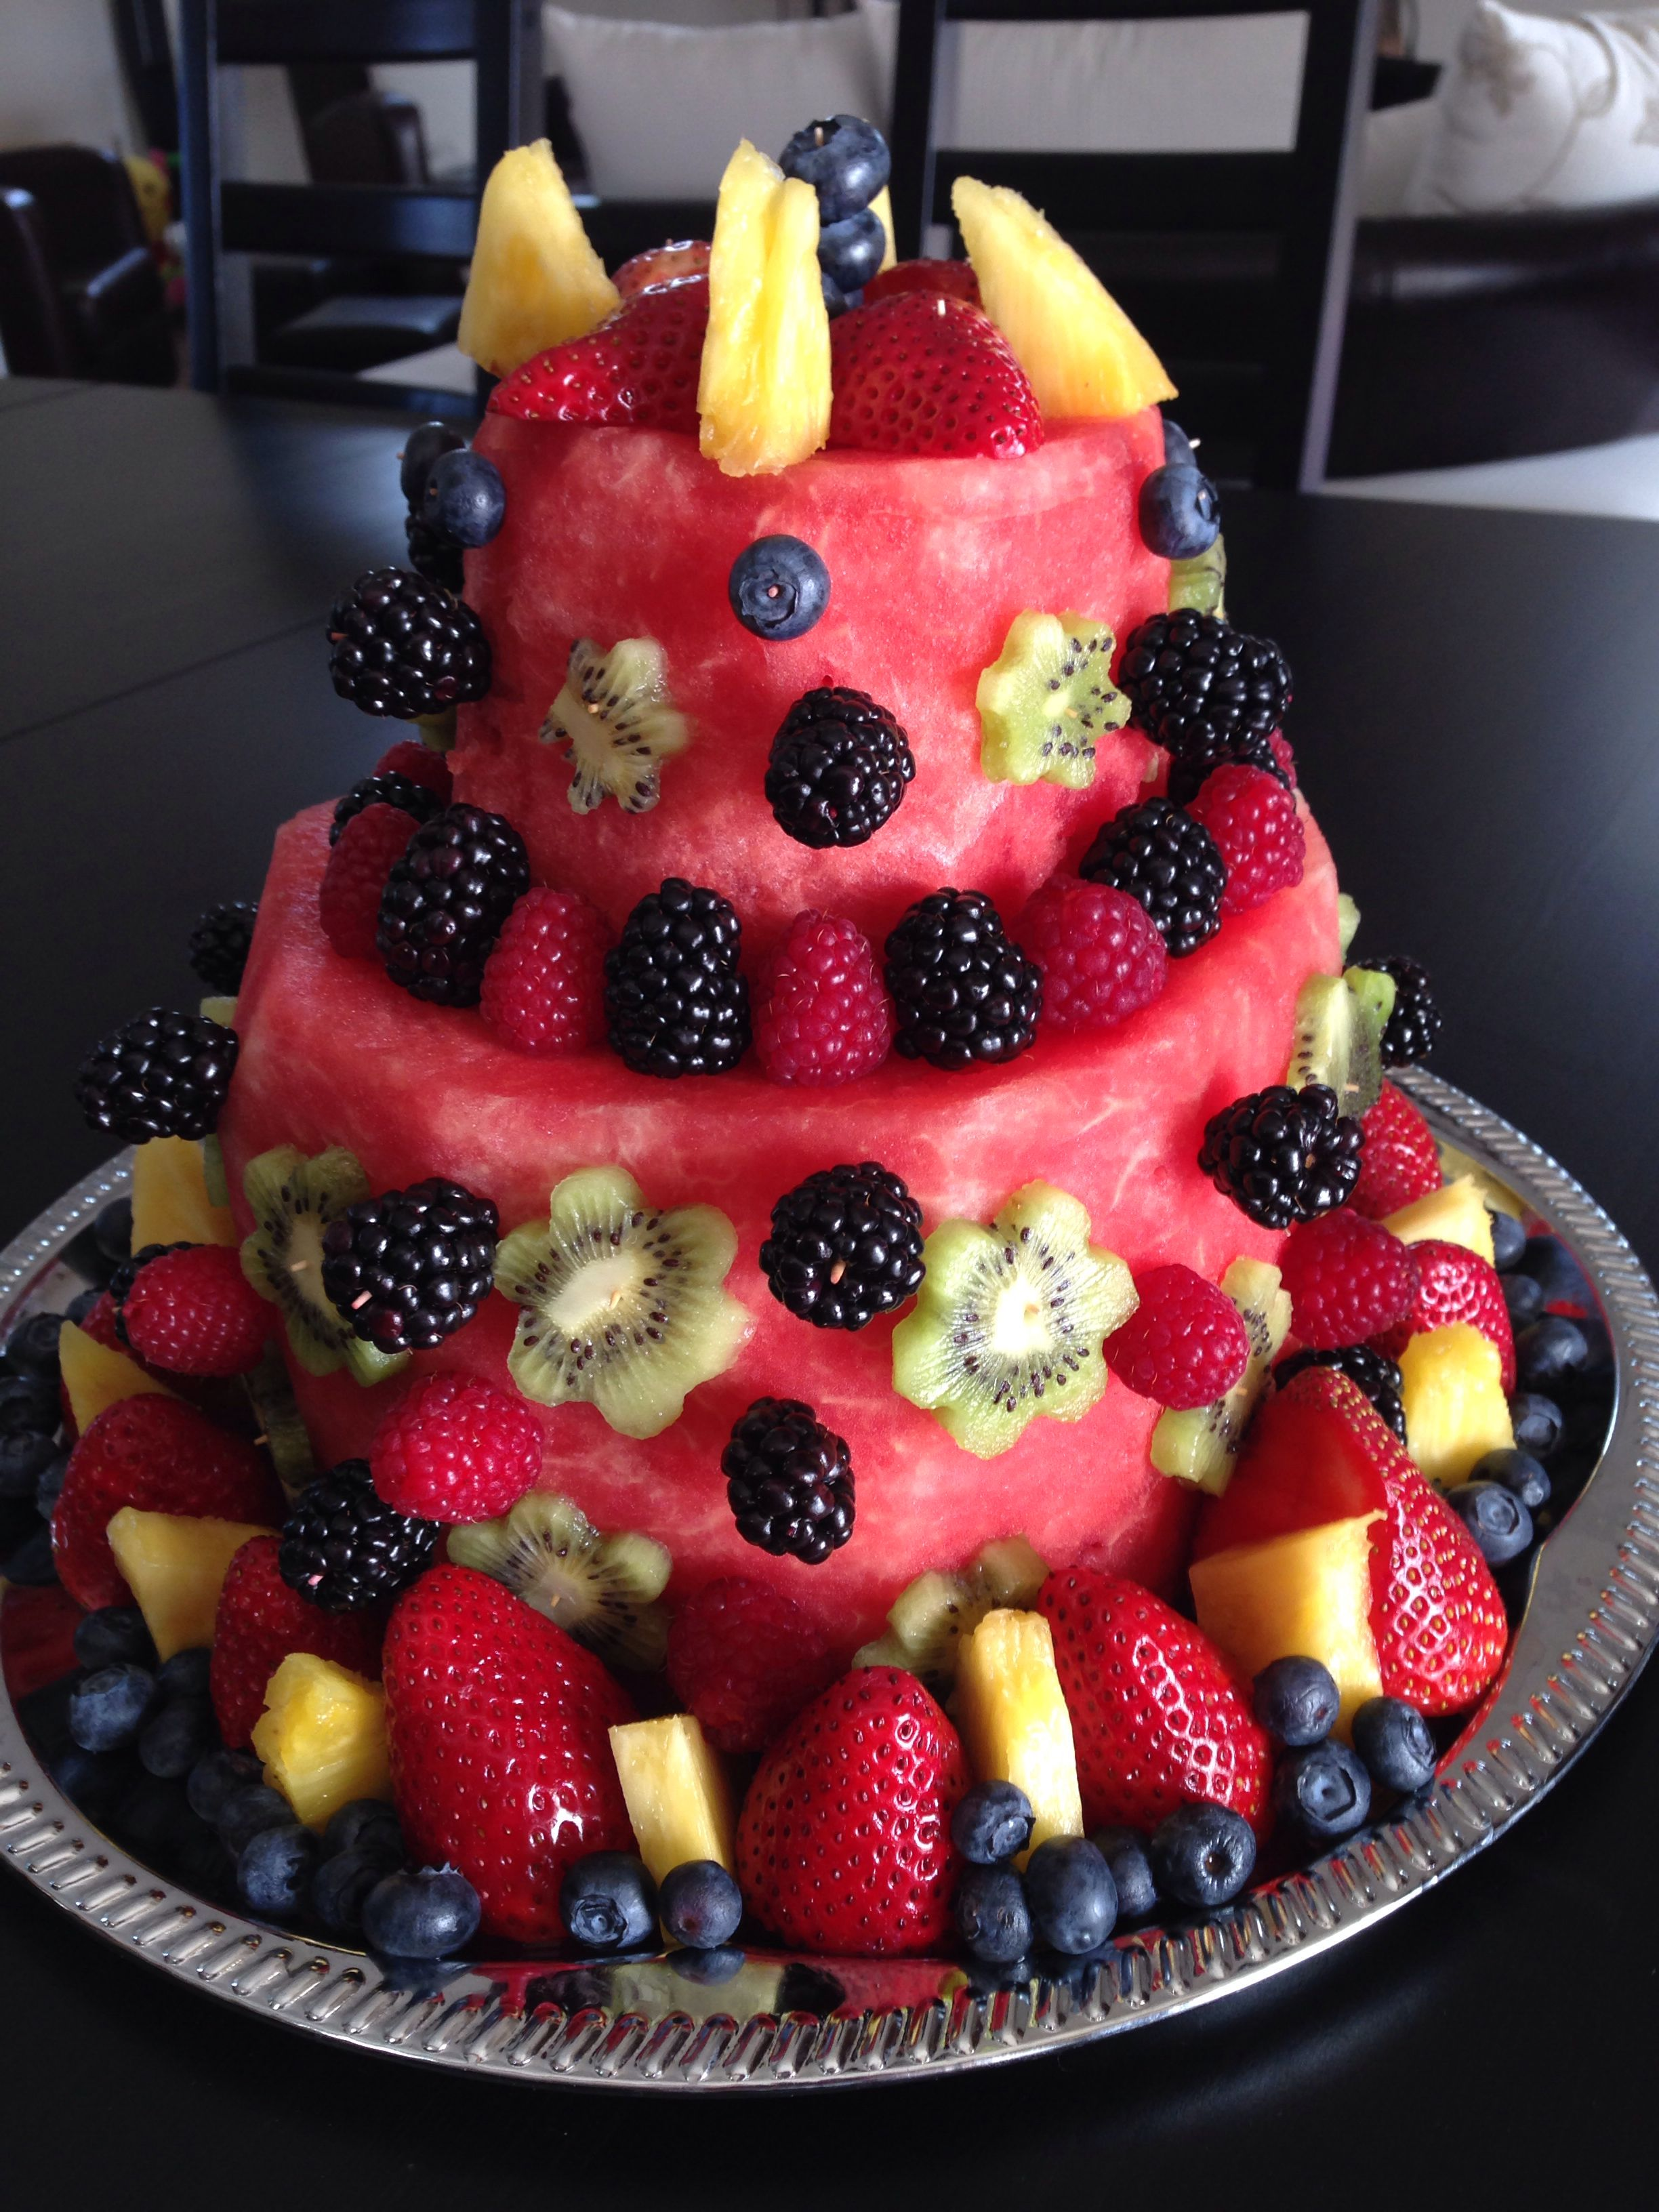 Our Own Birthday Creation Watermelon Fruit Cake With Images